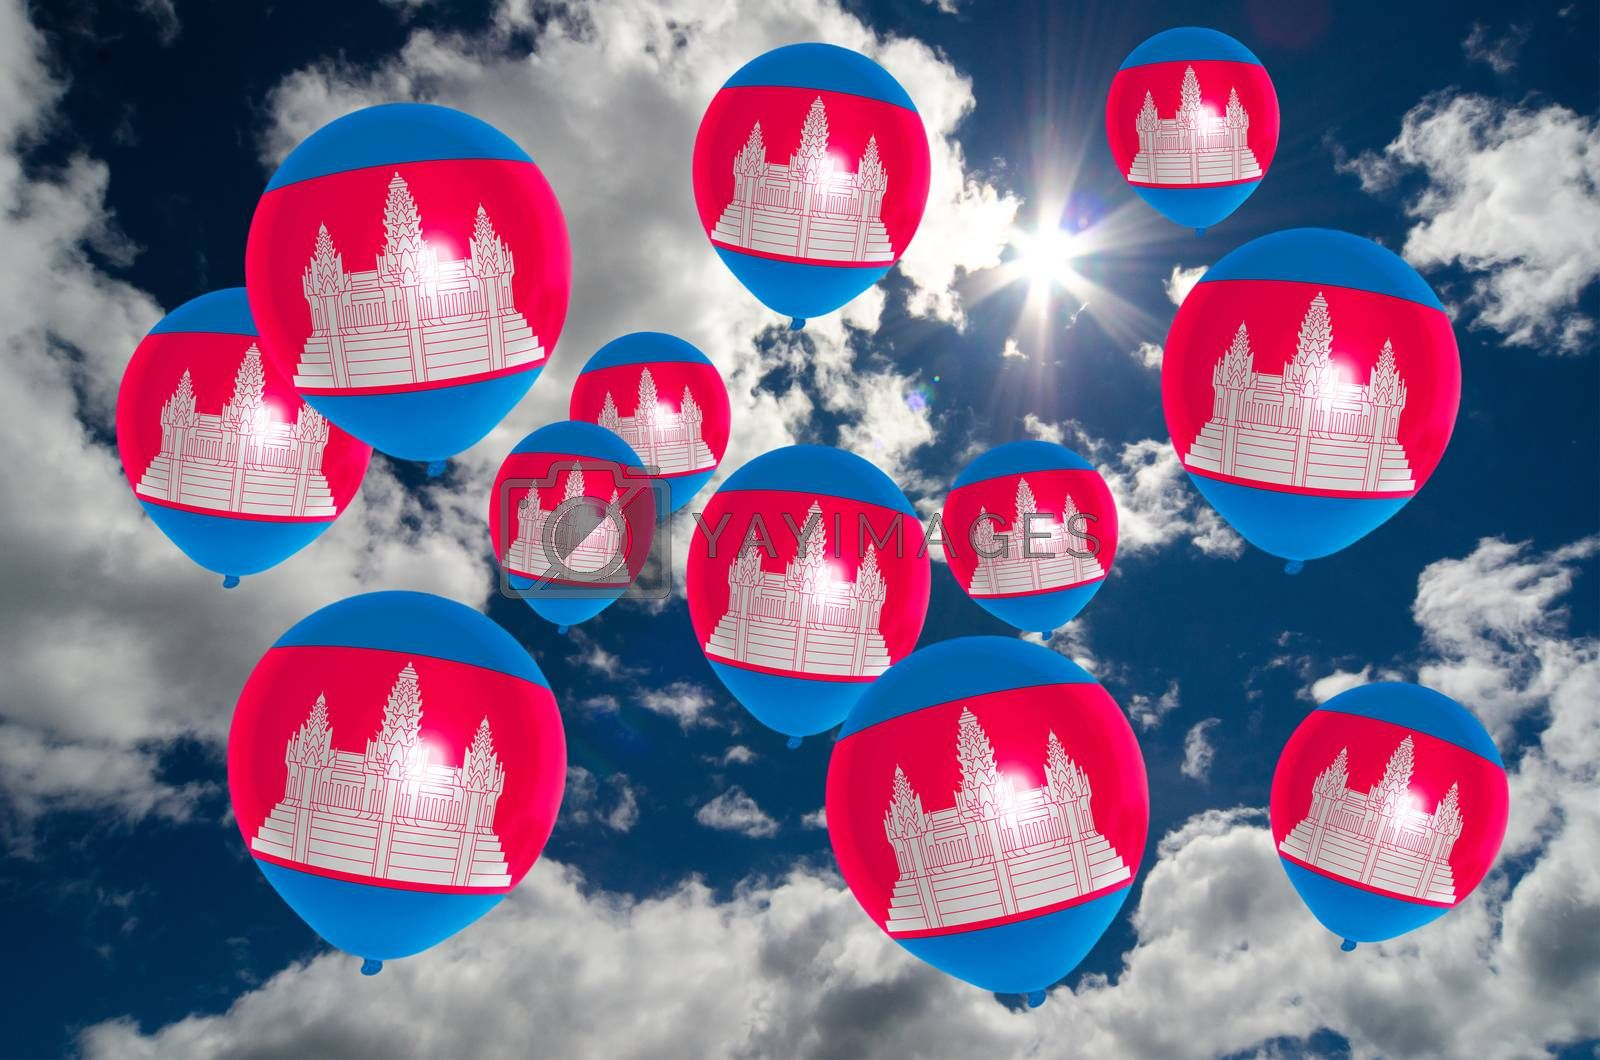 many ballons in colors of cambodia flag flying on sky